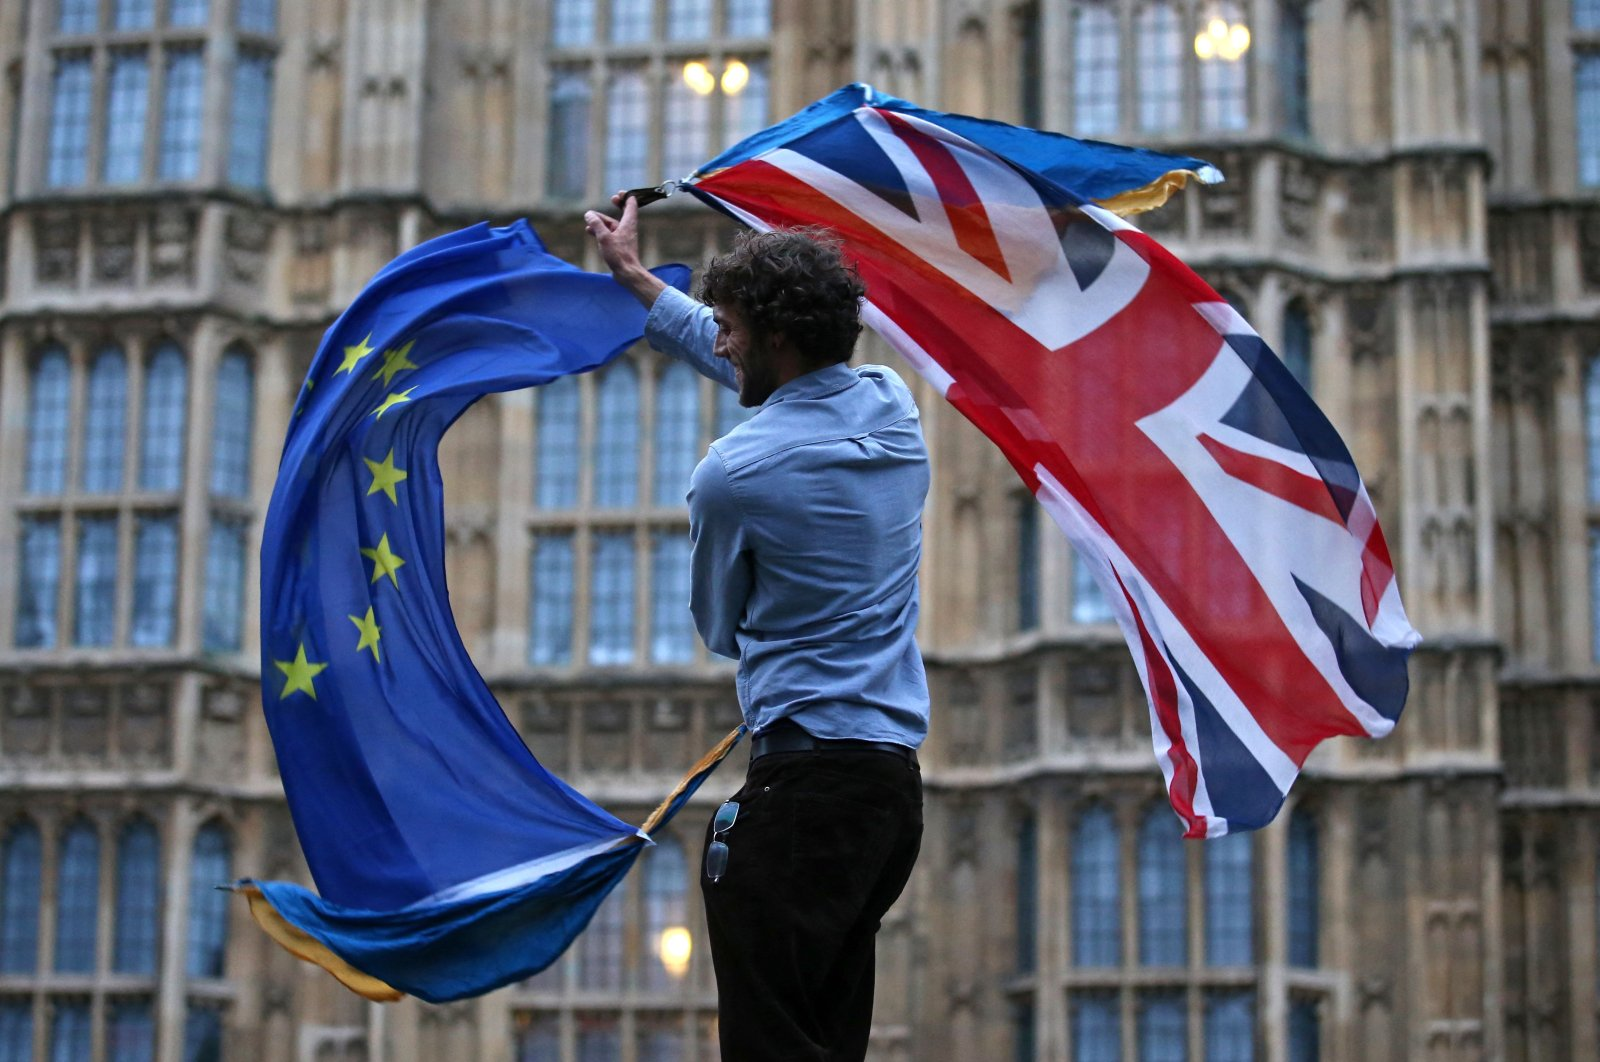 A man waves both a European Union flag and the U.K. flag together on College Green outside The Houses of Parliament at an anti-Brexit protest in central London, U.K., June 28, 2016. (AFP Photo)